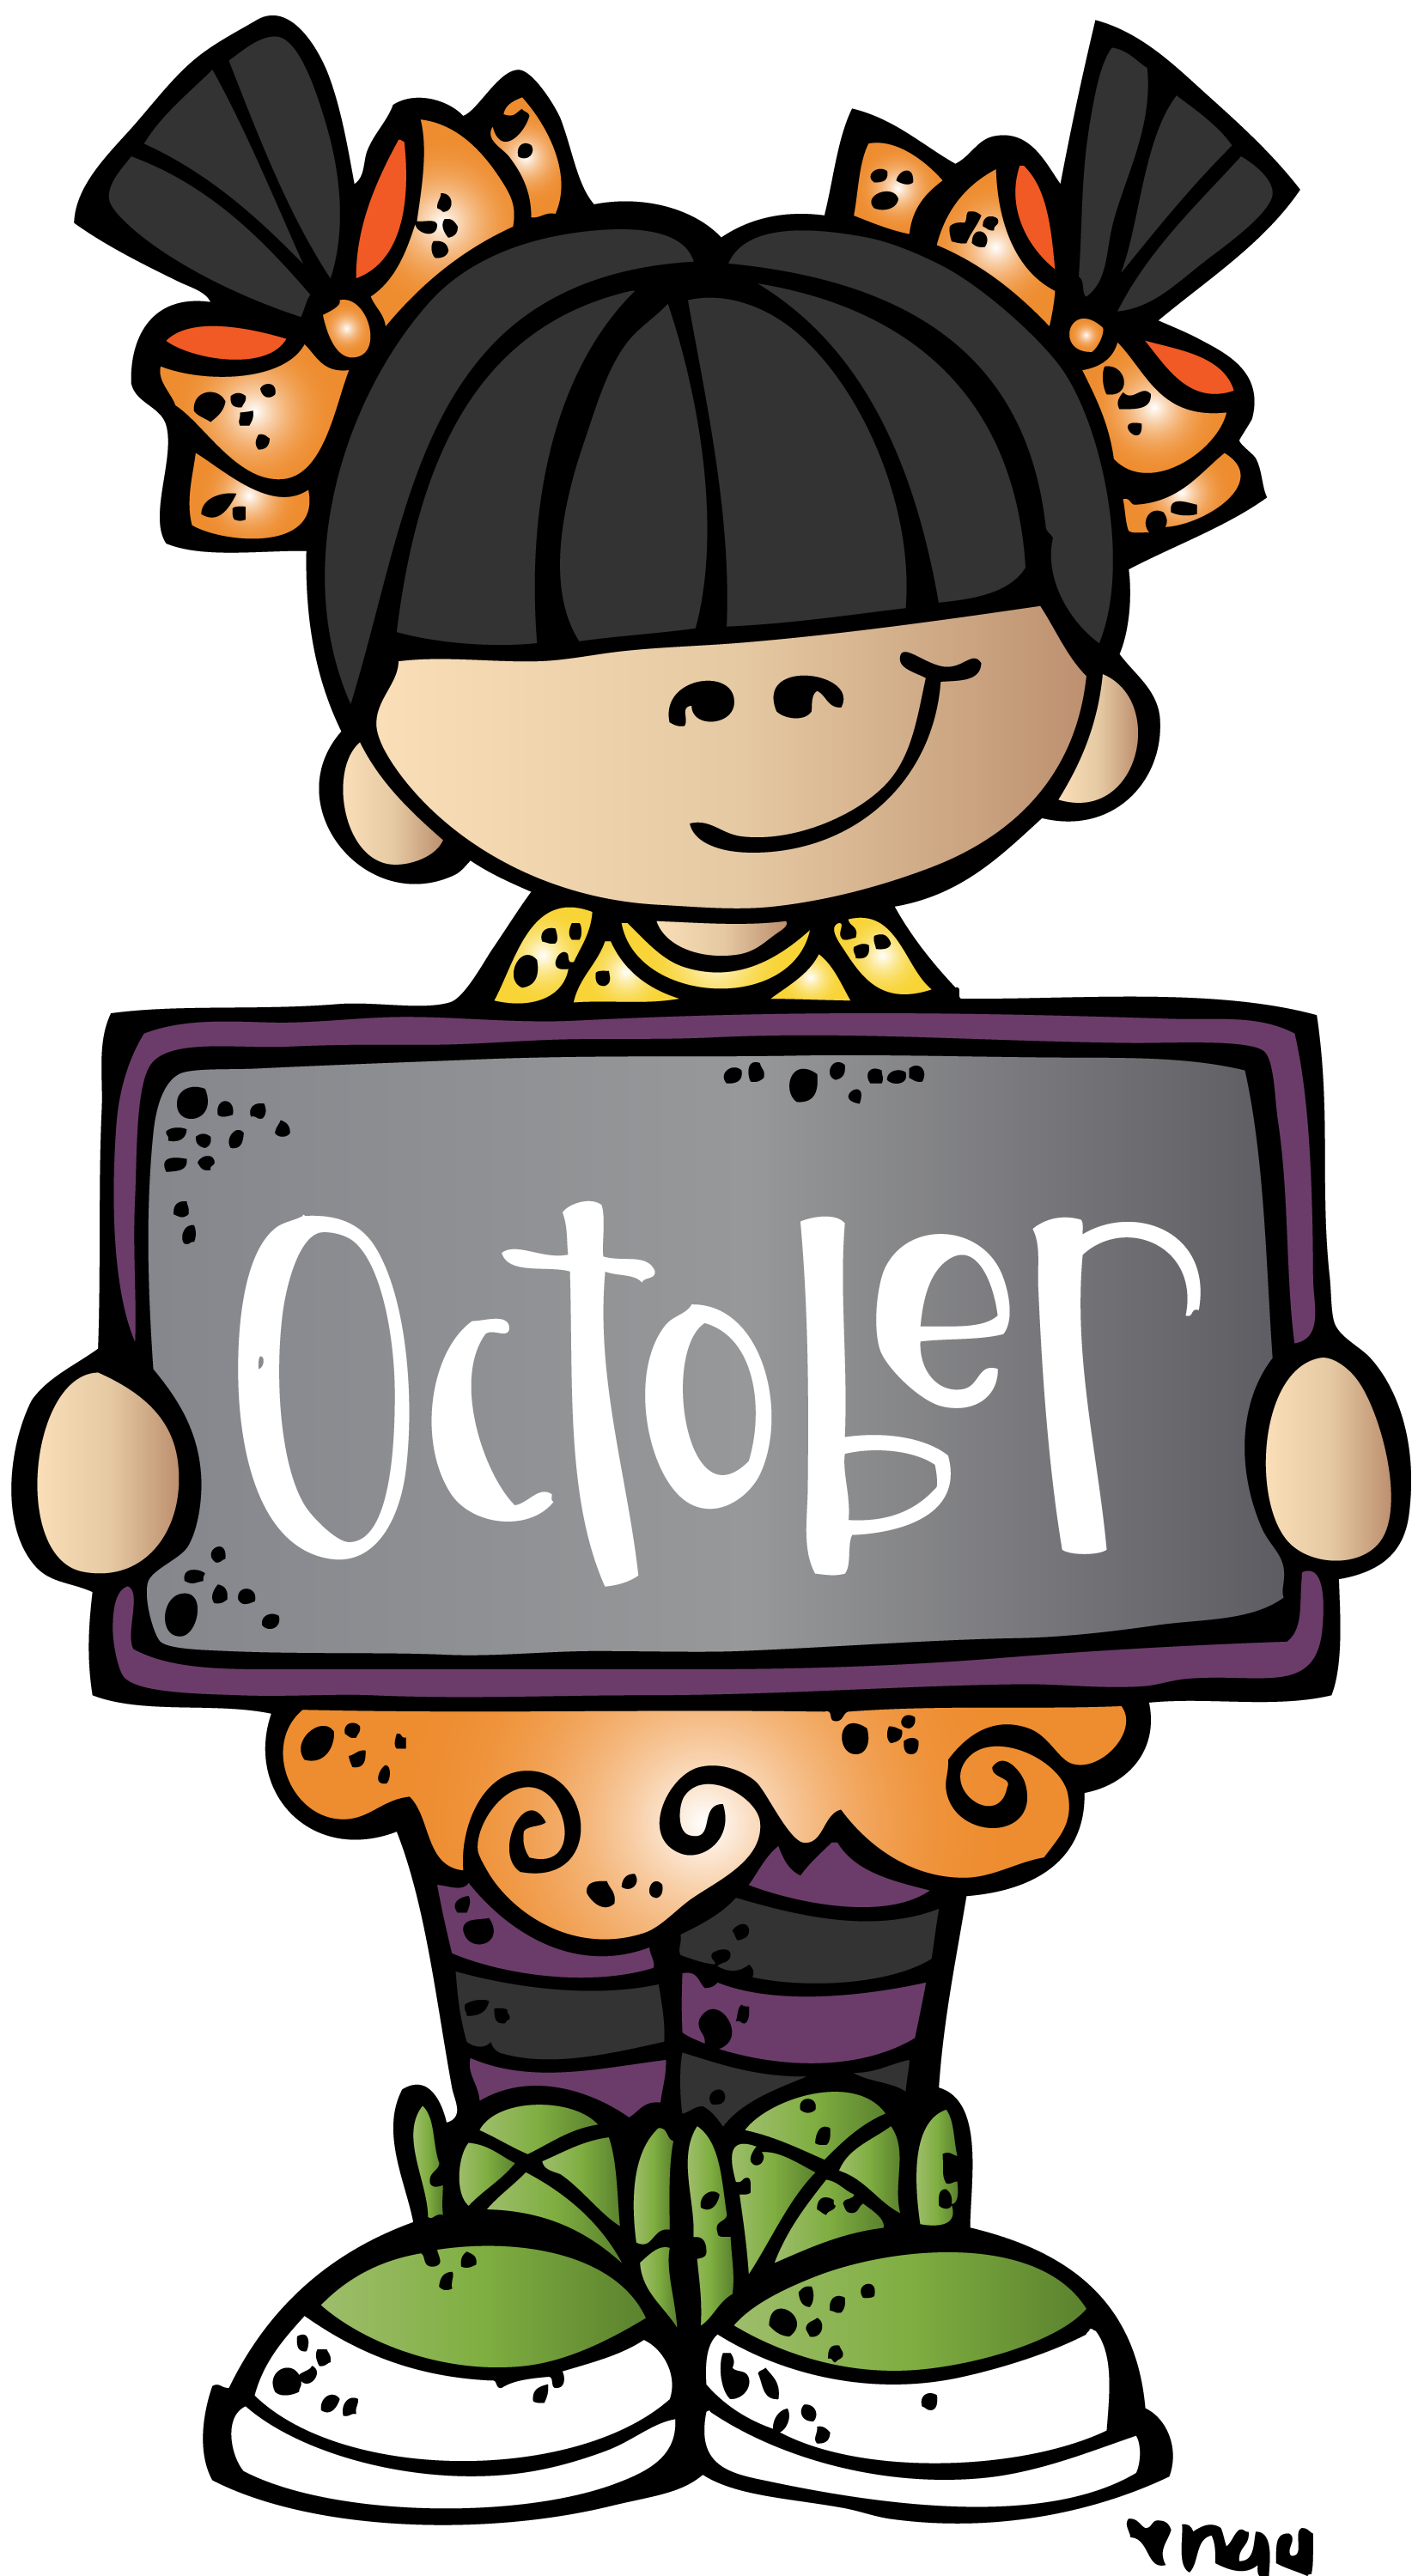 Clipart october calendar picture library library October mkb (c) Melonheadz Illustrating LLC 2014 colored.png (1651 ... picture library library